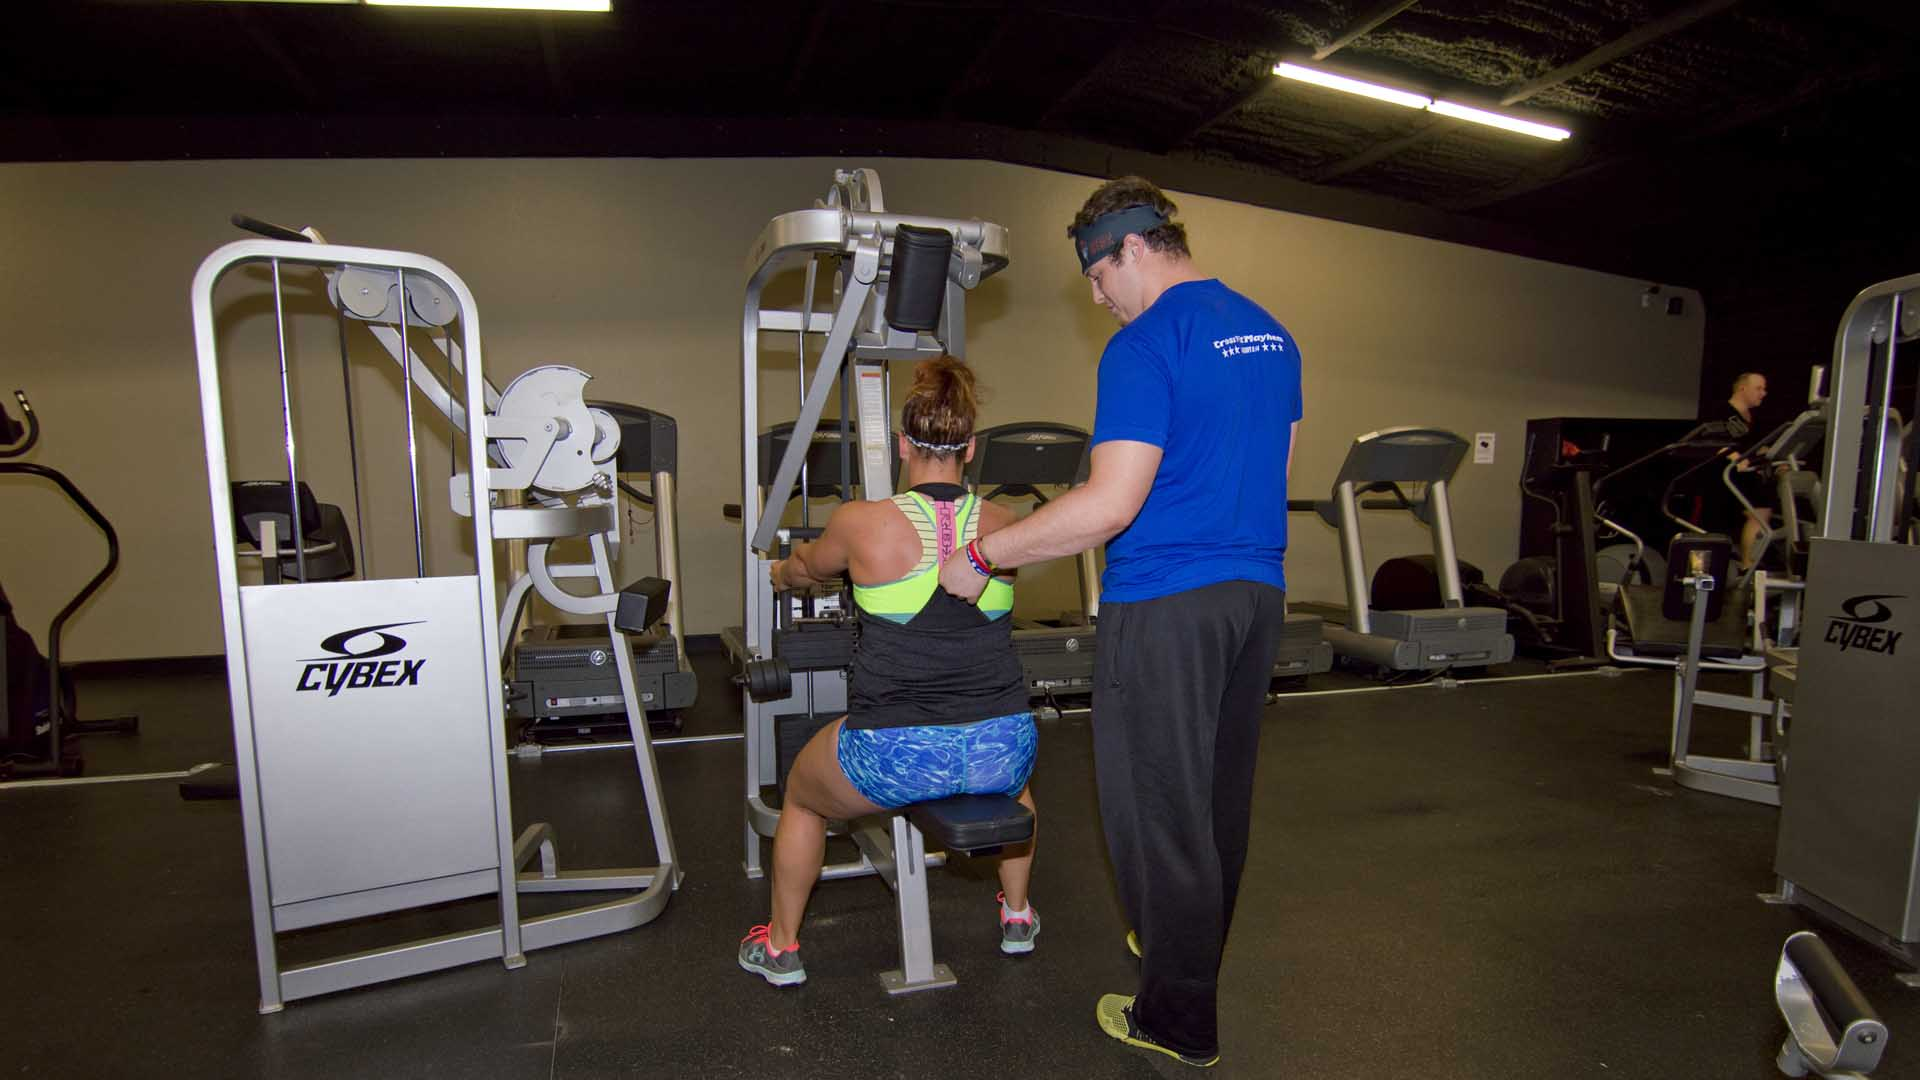 Cody instructing a client to squeeze her shoulder blades at the end of an exercise.